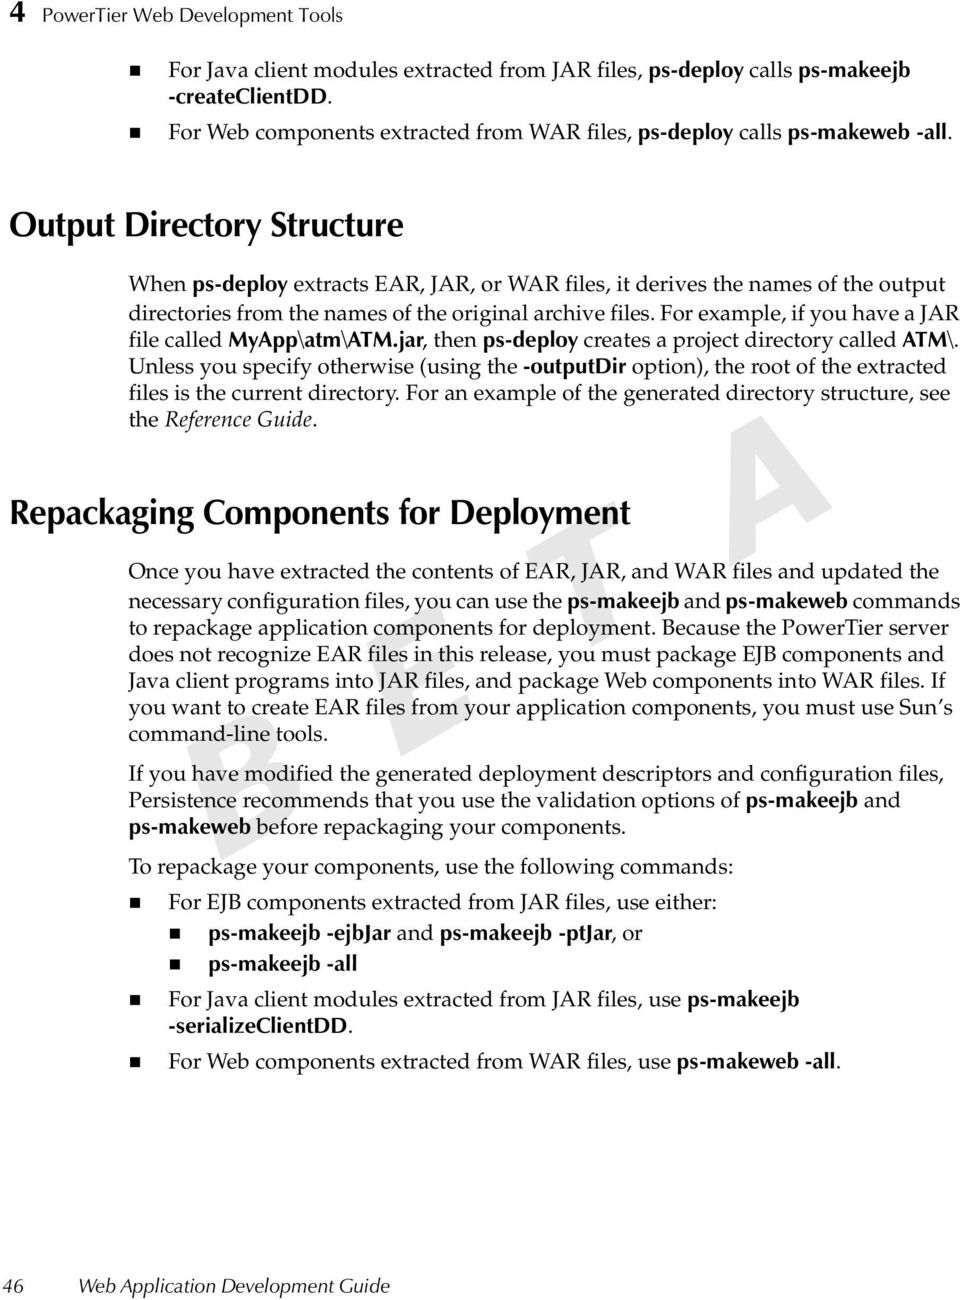 Output Directory Structure When ps-deploy extracts EAR, JAR, or WAR files, it derives the names of the output directories from the names of the original archive files.